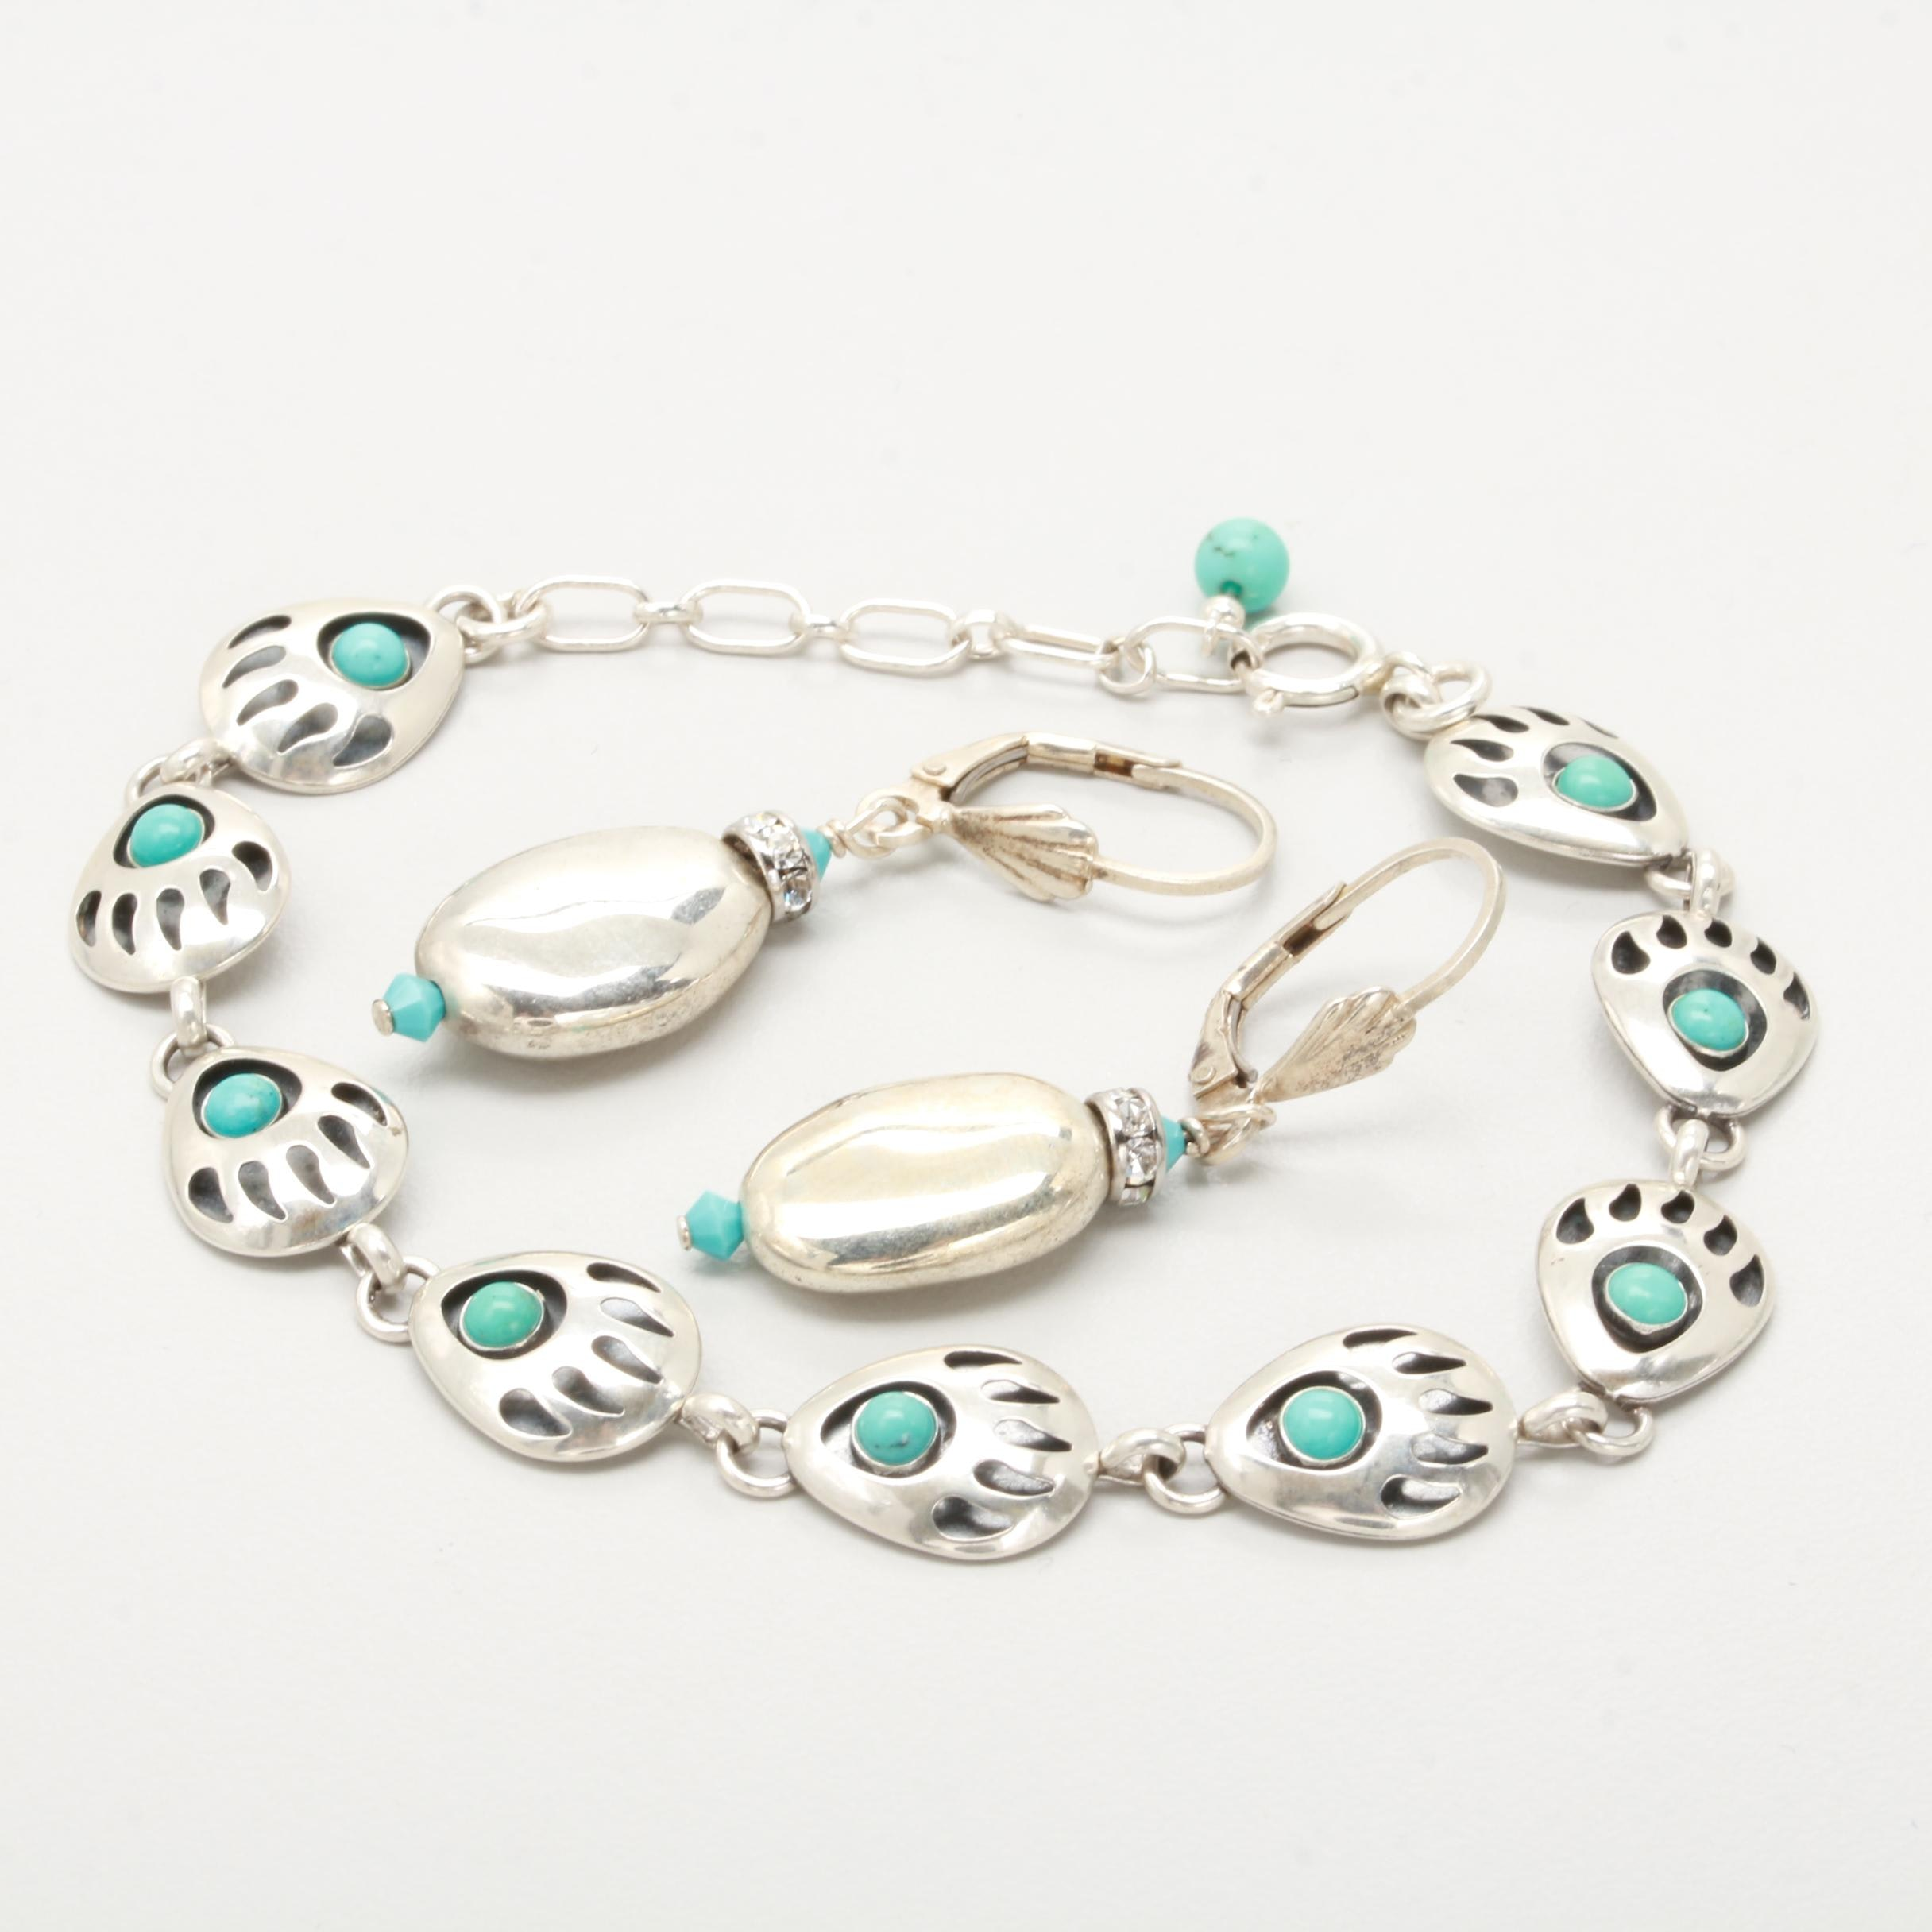 Southwestern Style Sterling Silver Jewelry Selection Including Turquoise